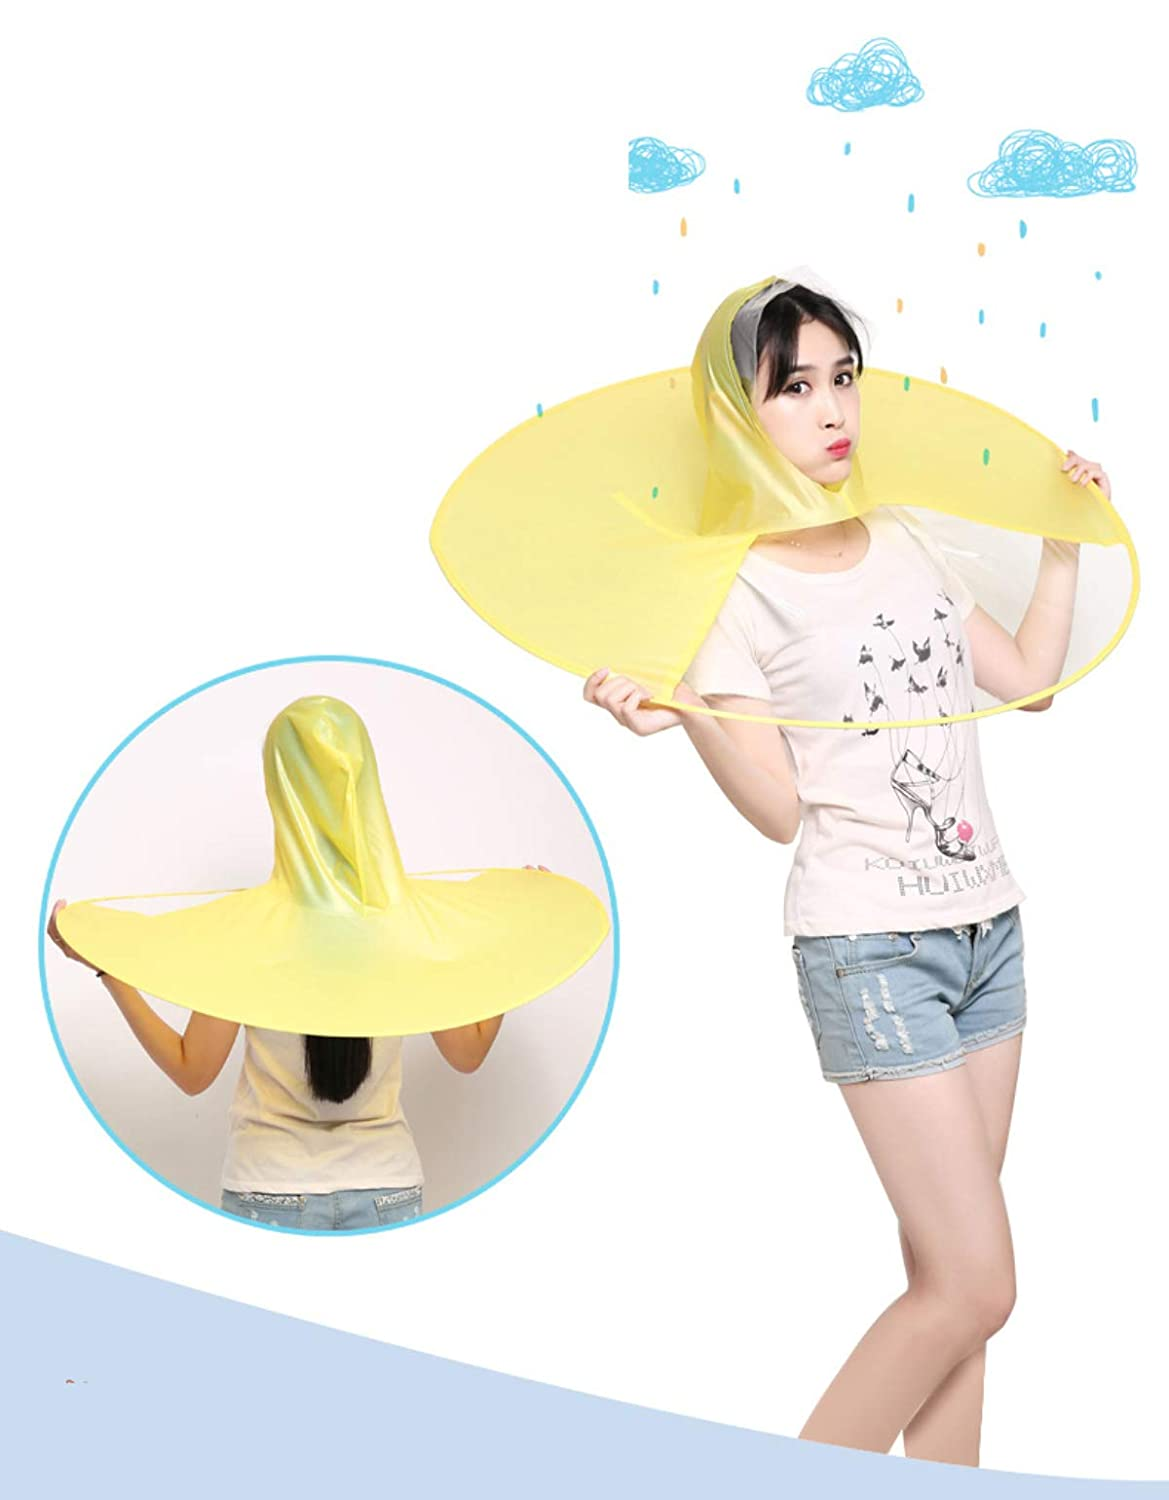 Amazon.com  Wantis Magical Rain Coat Artifact UFO Umbrella Hands Free  Charming Costum Yellow (1.55-1.8M(height))  Garden   Outdoor fc919a4d1ba9